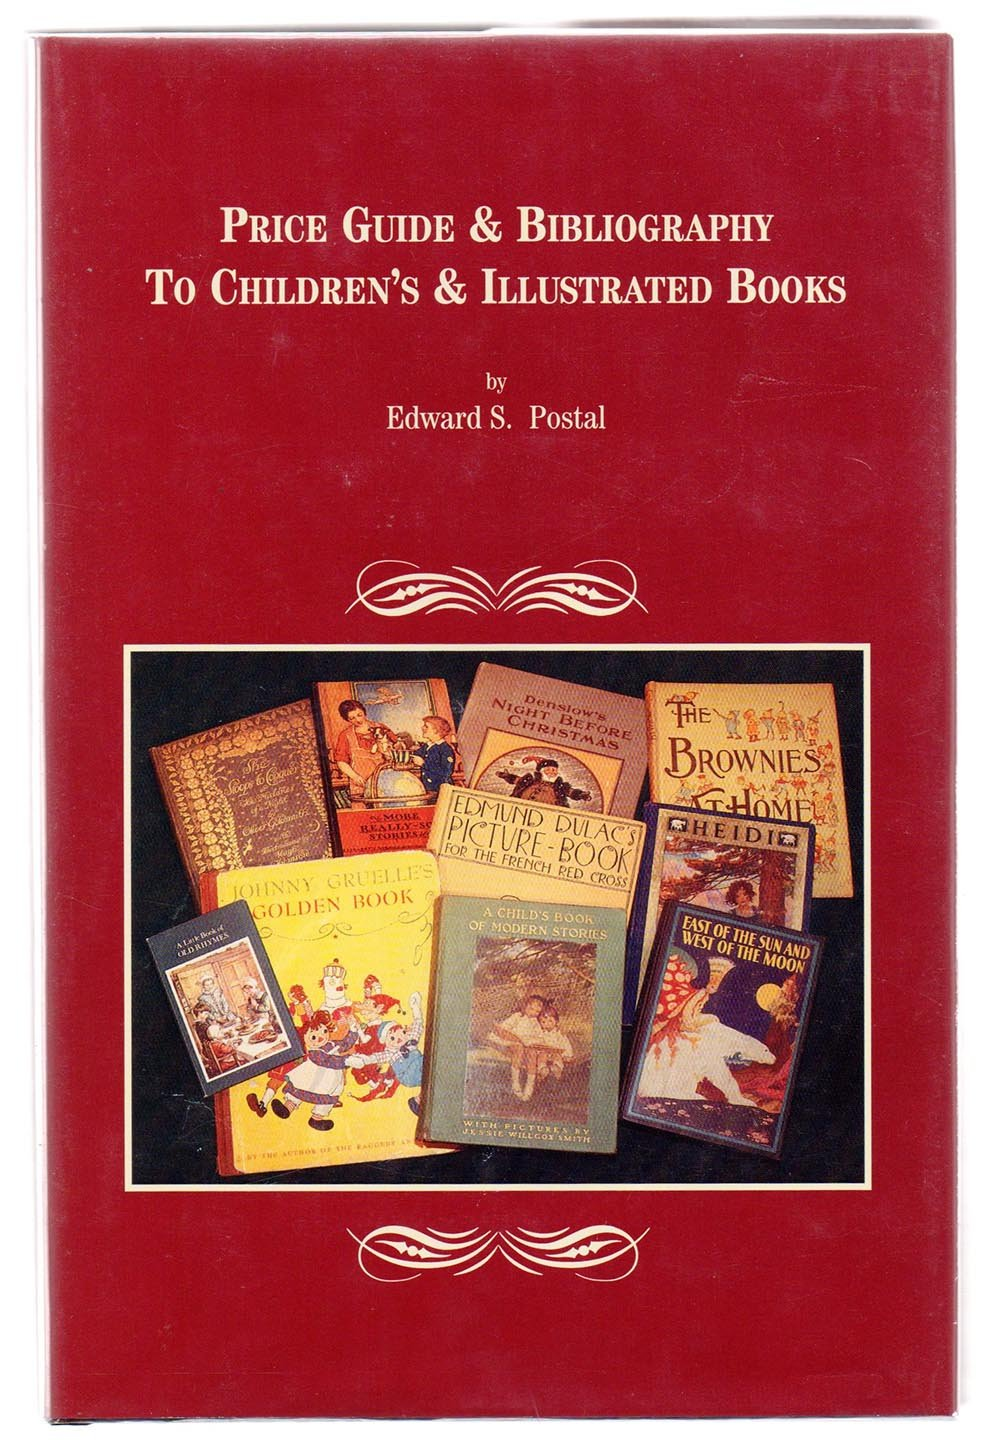 Price Guide & Bibliography To Children's & Illustrated Books